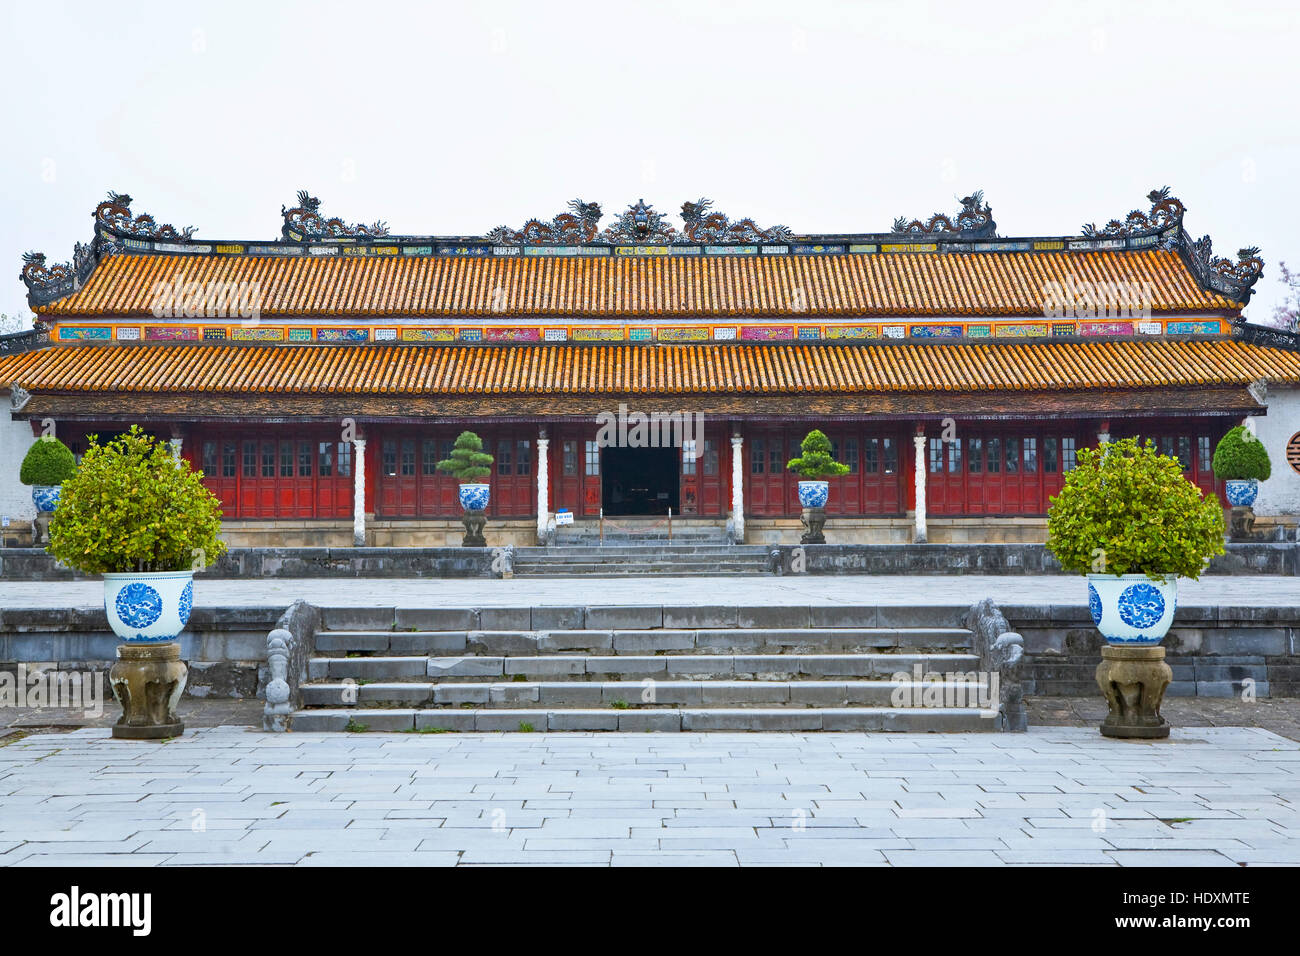 One of the few restored buildings at the Imperial City in Hue, Vietnam. Stock Photo